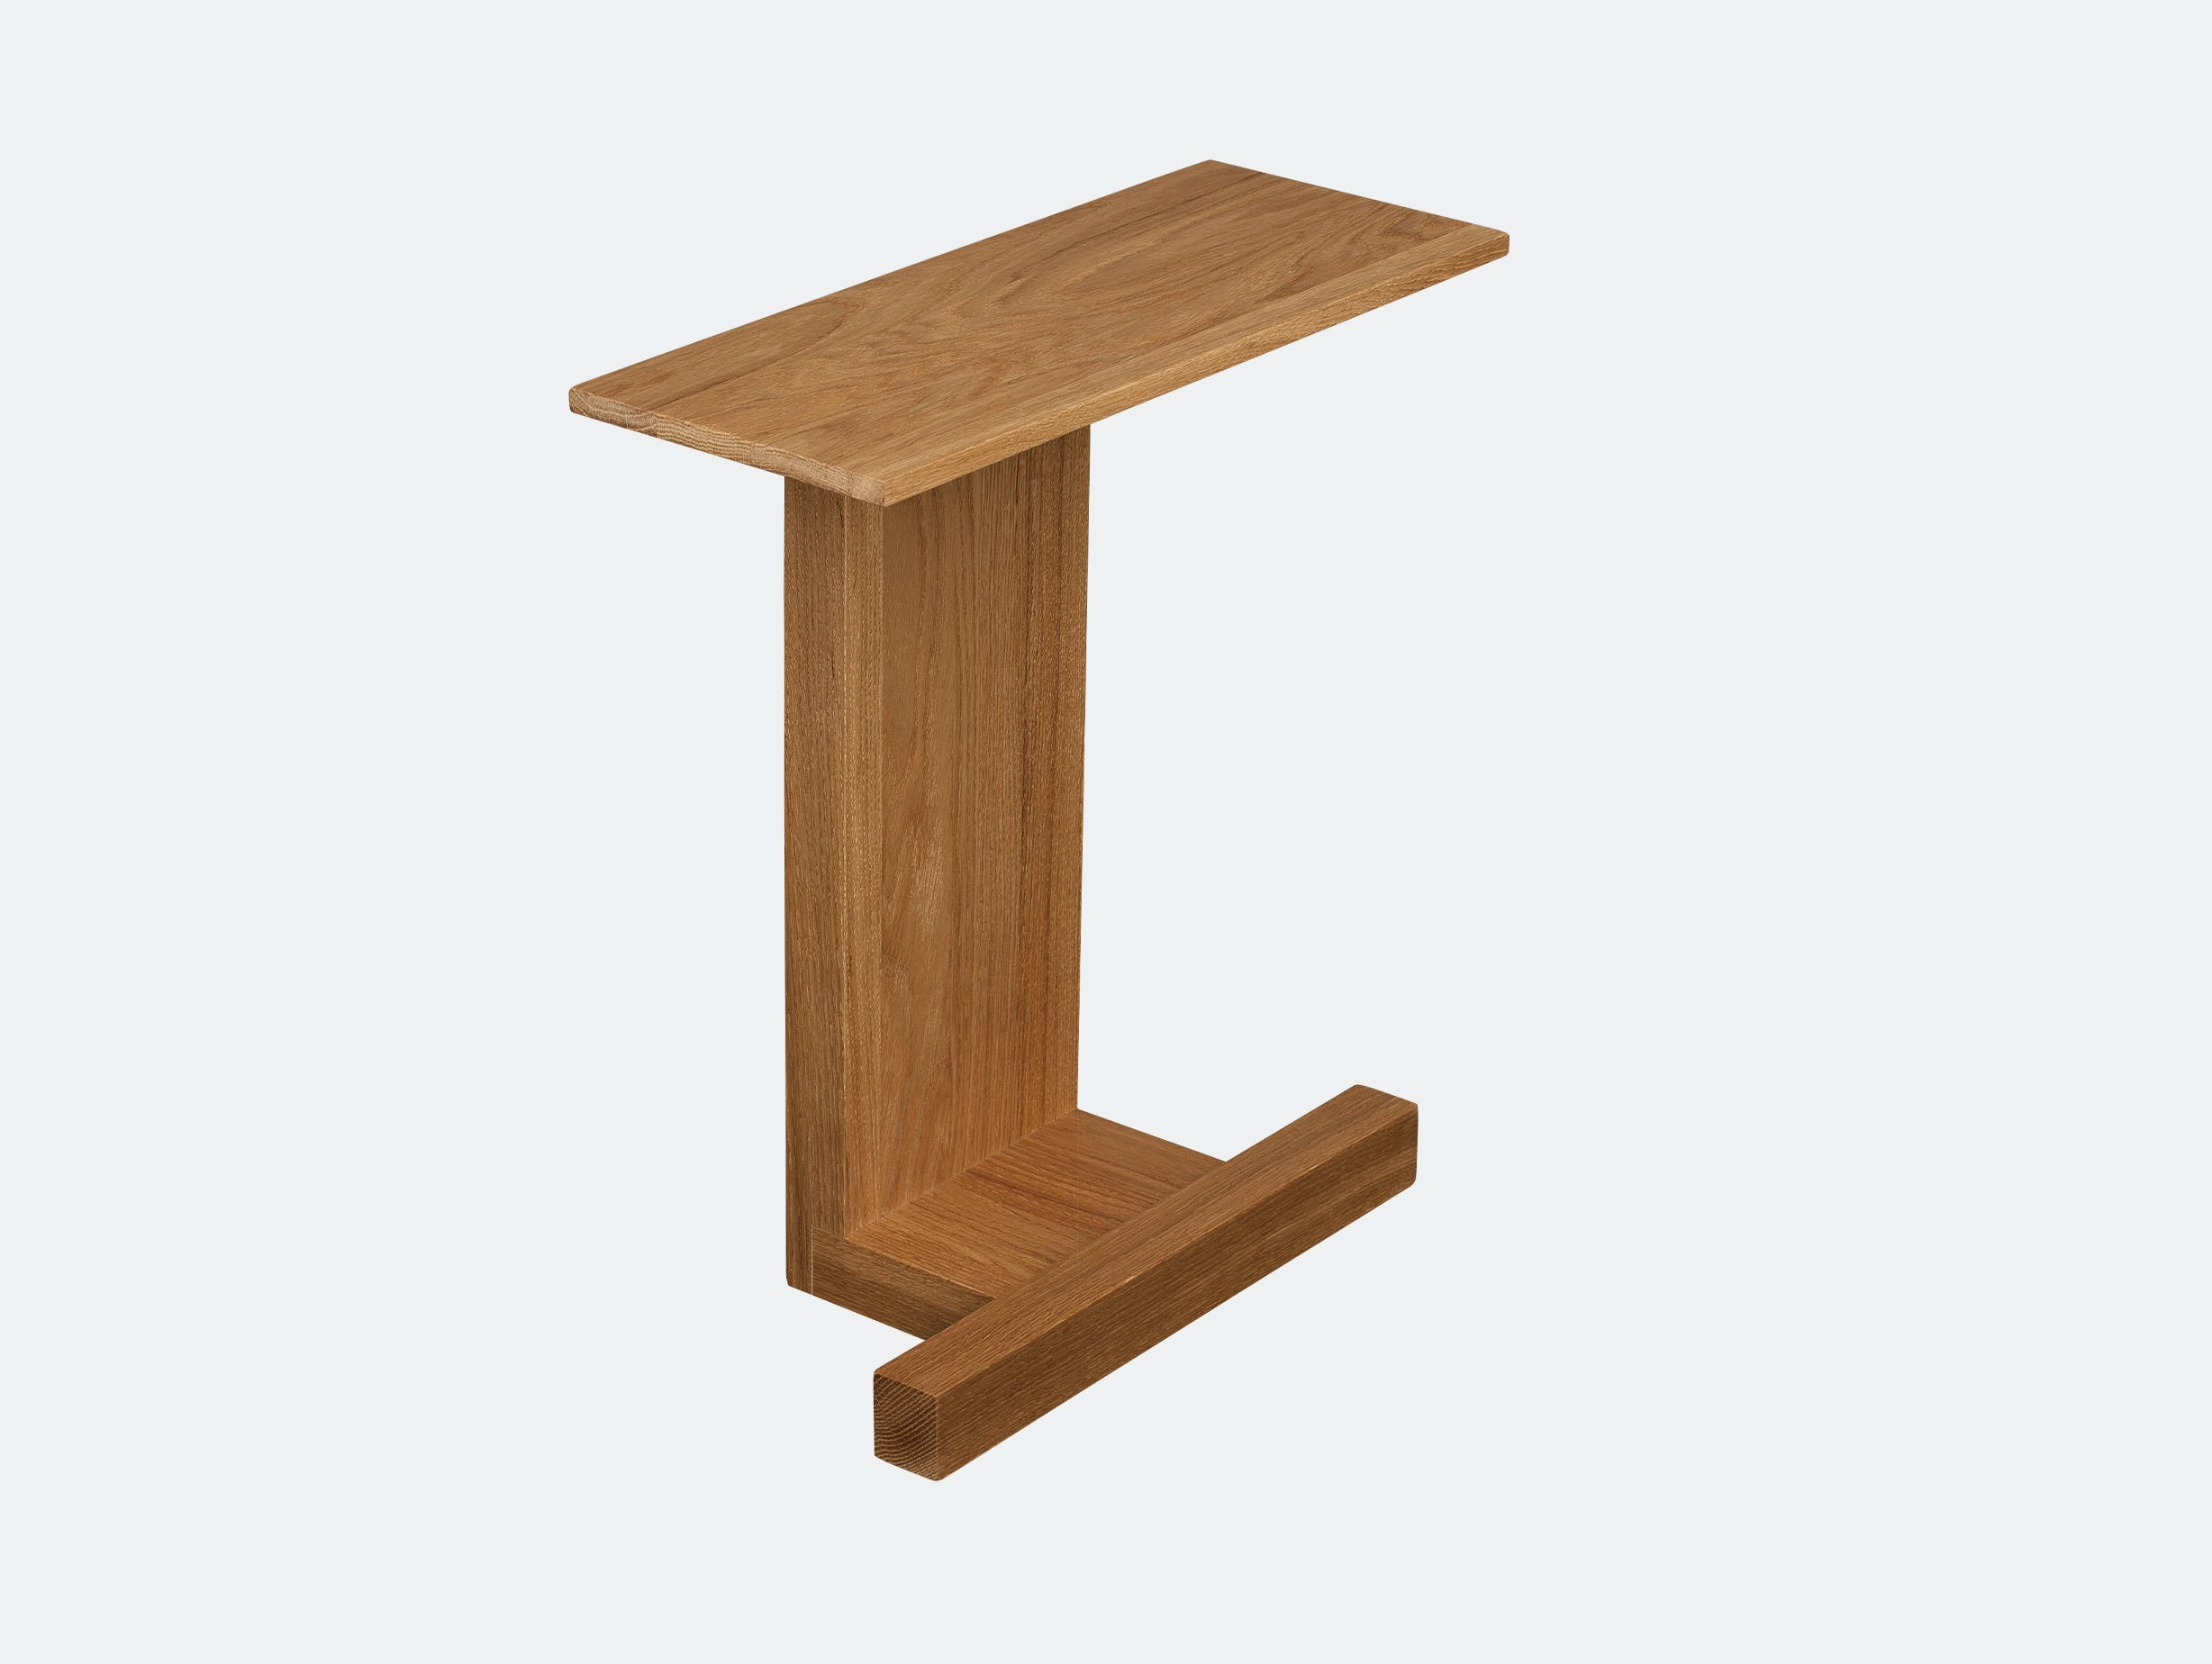 Fogia supersolid object 4 oak 3